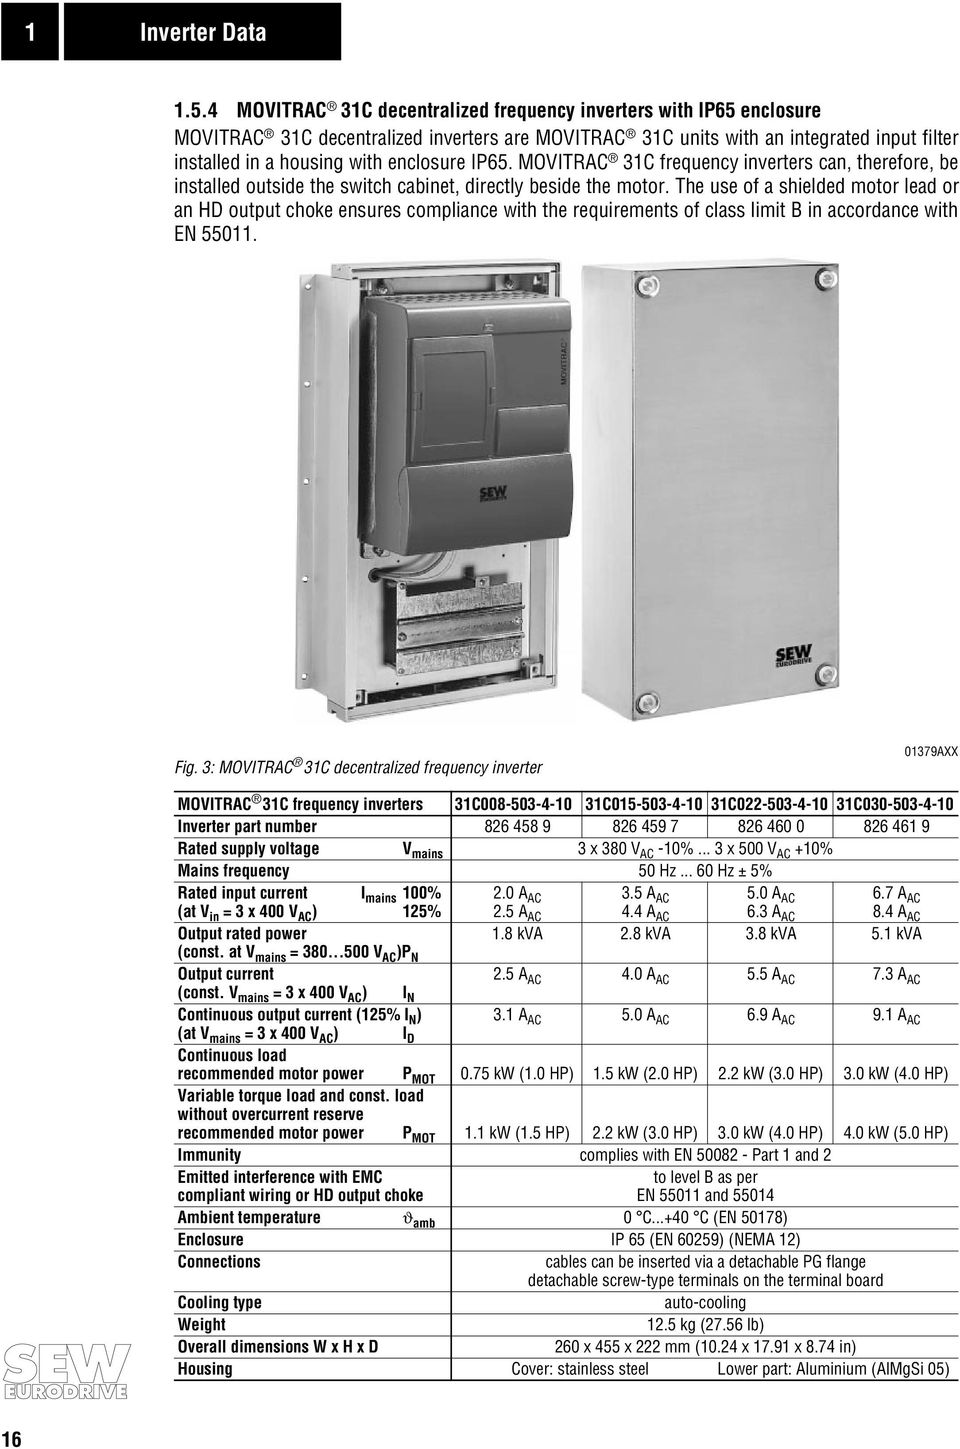 MOVITRAC 31C frequency inverters can, therefore, be installed outside the  switch cabinet